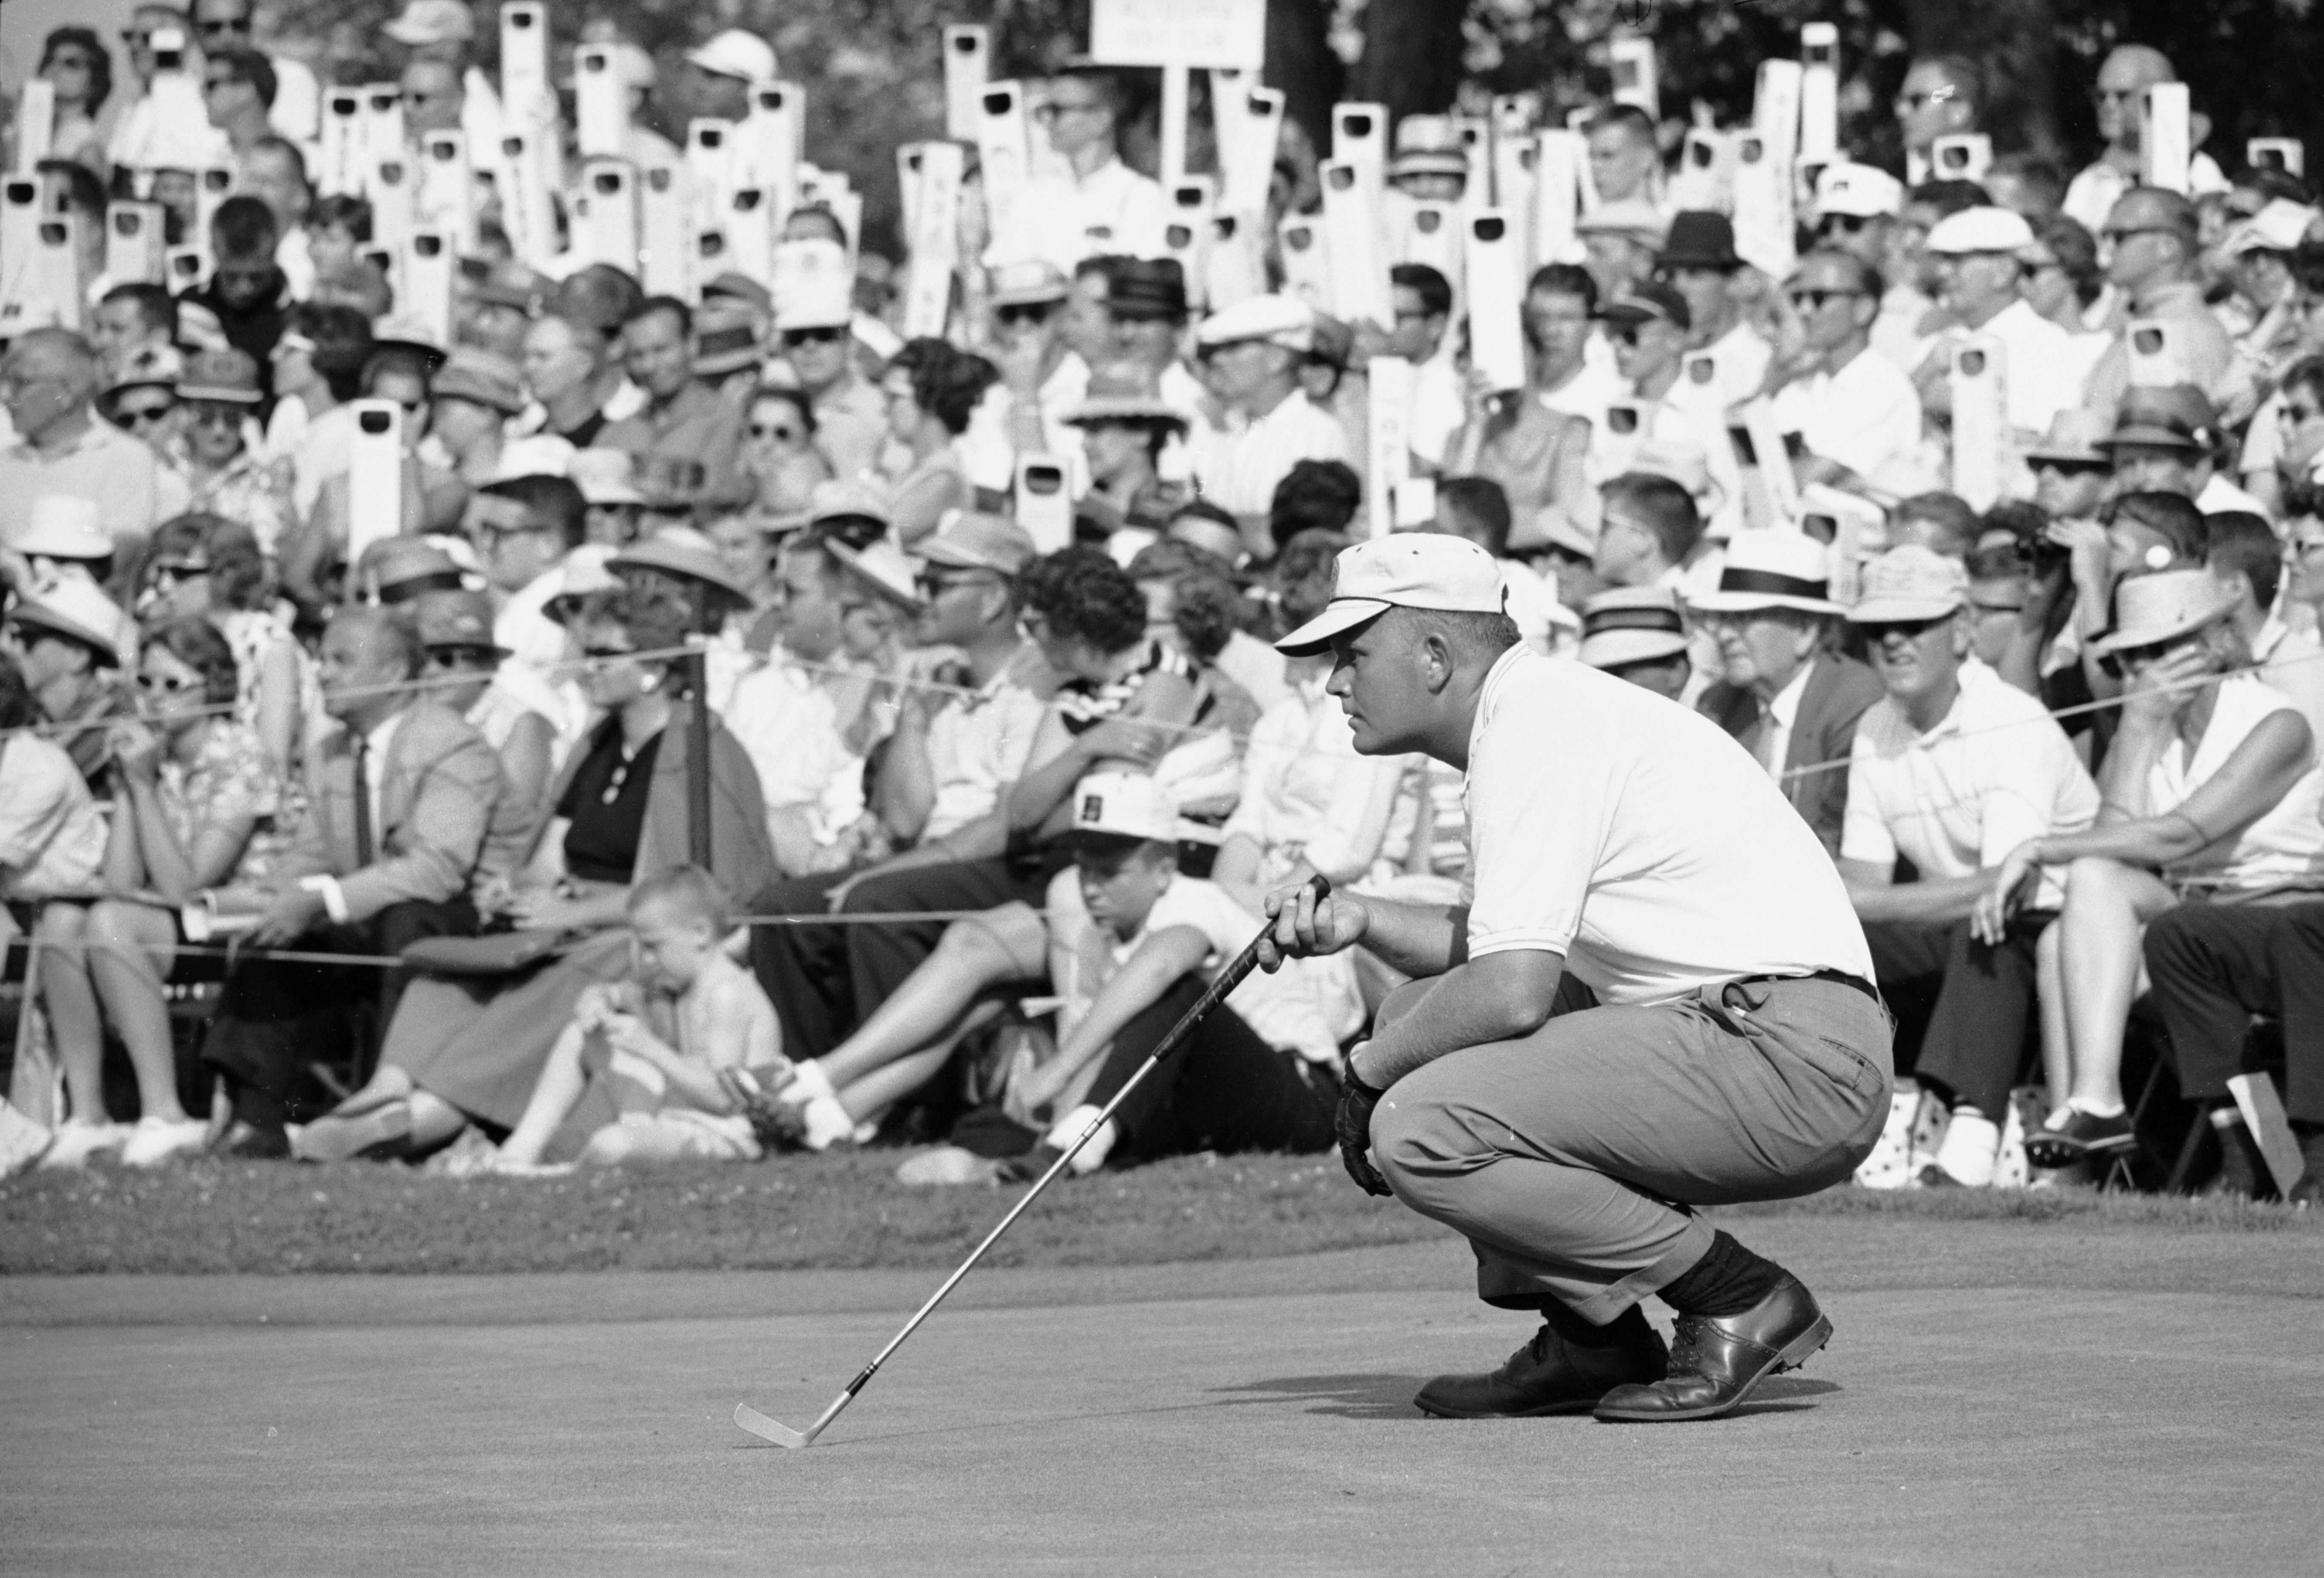 Watched by fans, American professional golfer Jack Nicklaus croches down to line up a shot during the 1962 U.S. Open.